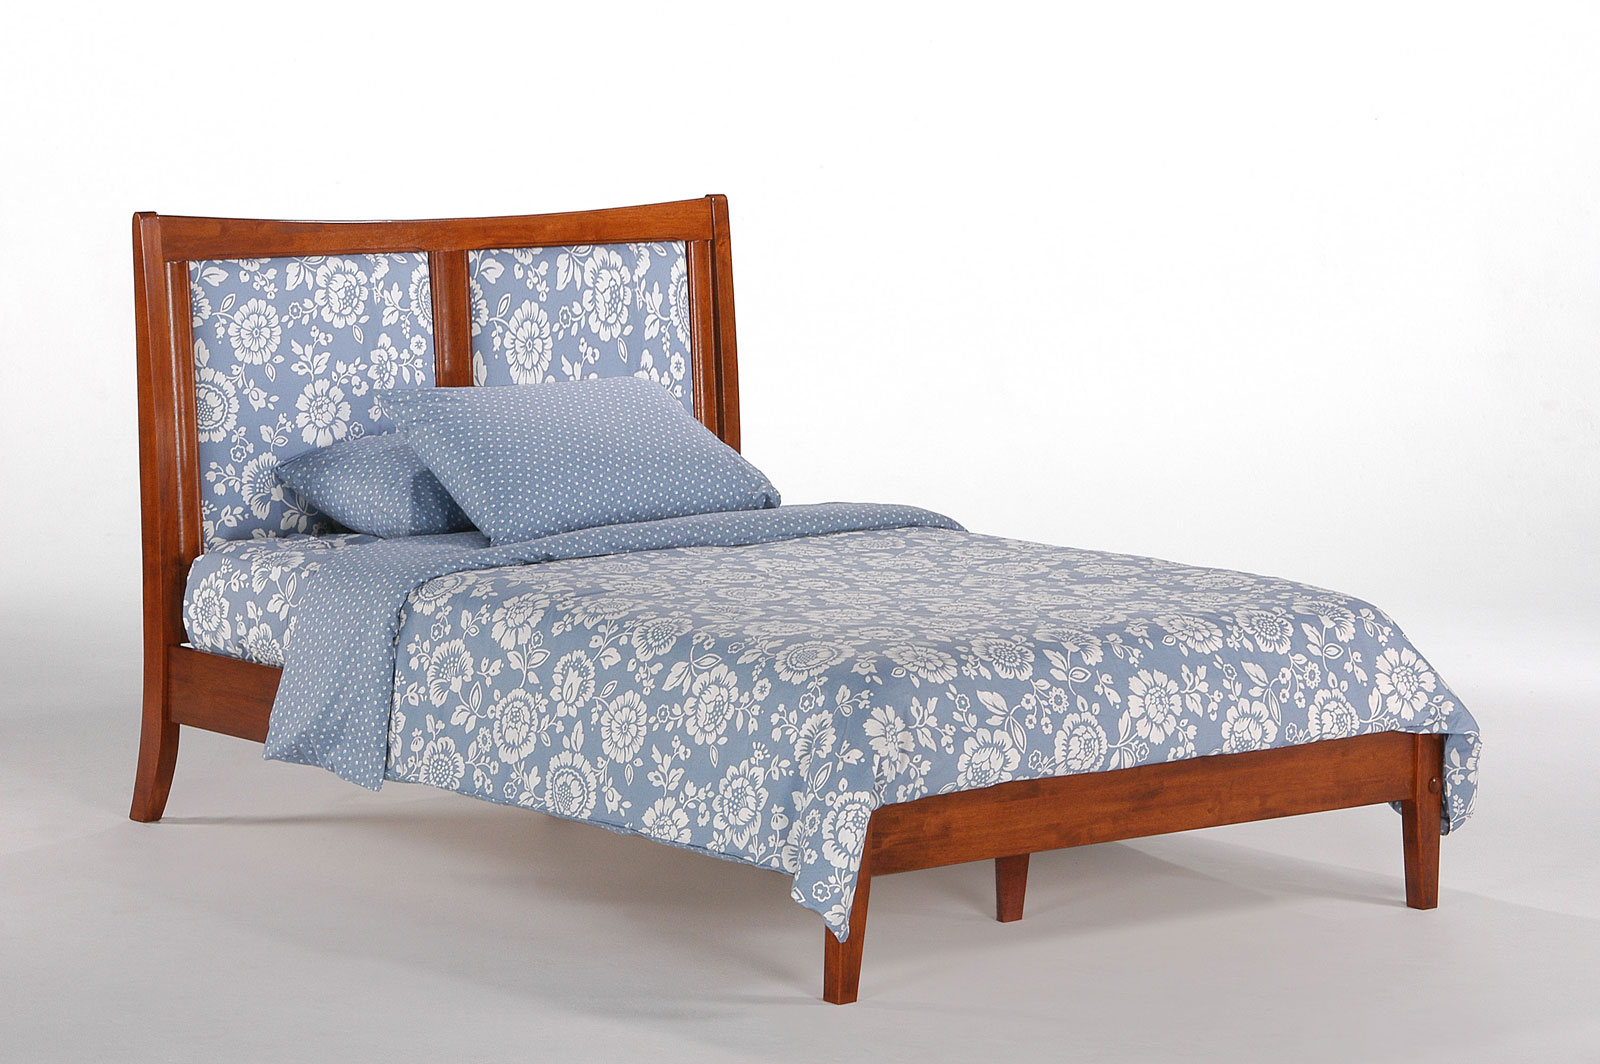 Twin Chameleon Platform Bed By Night And Day Furniture Online In Beds And Headboards